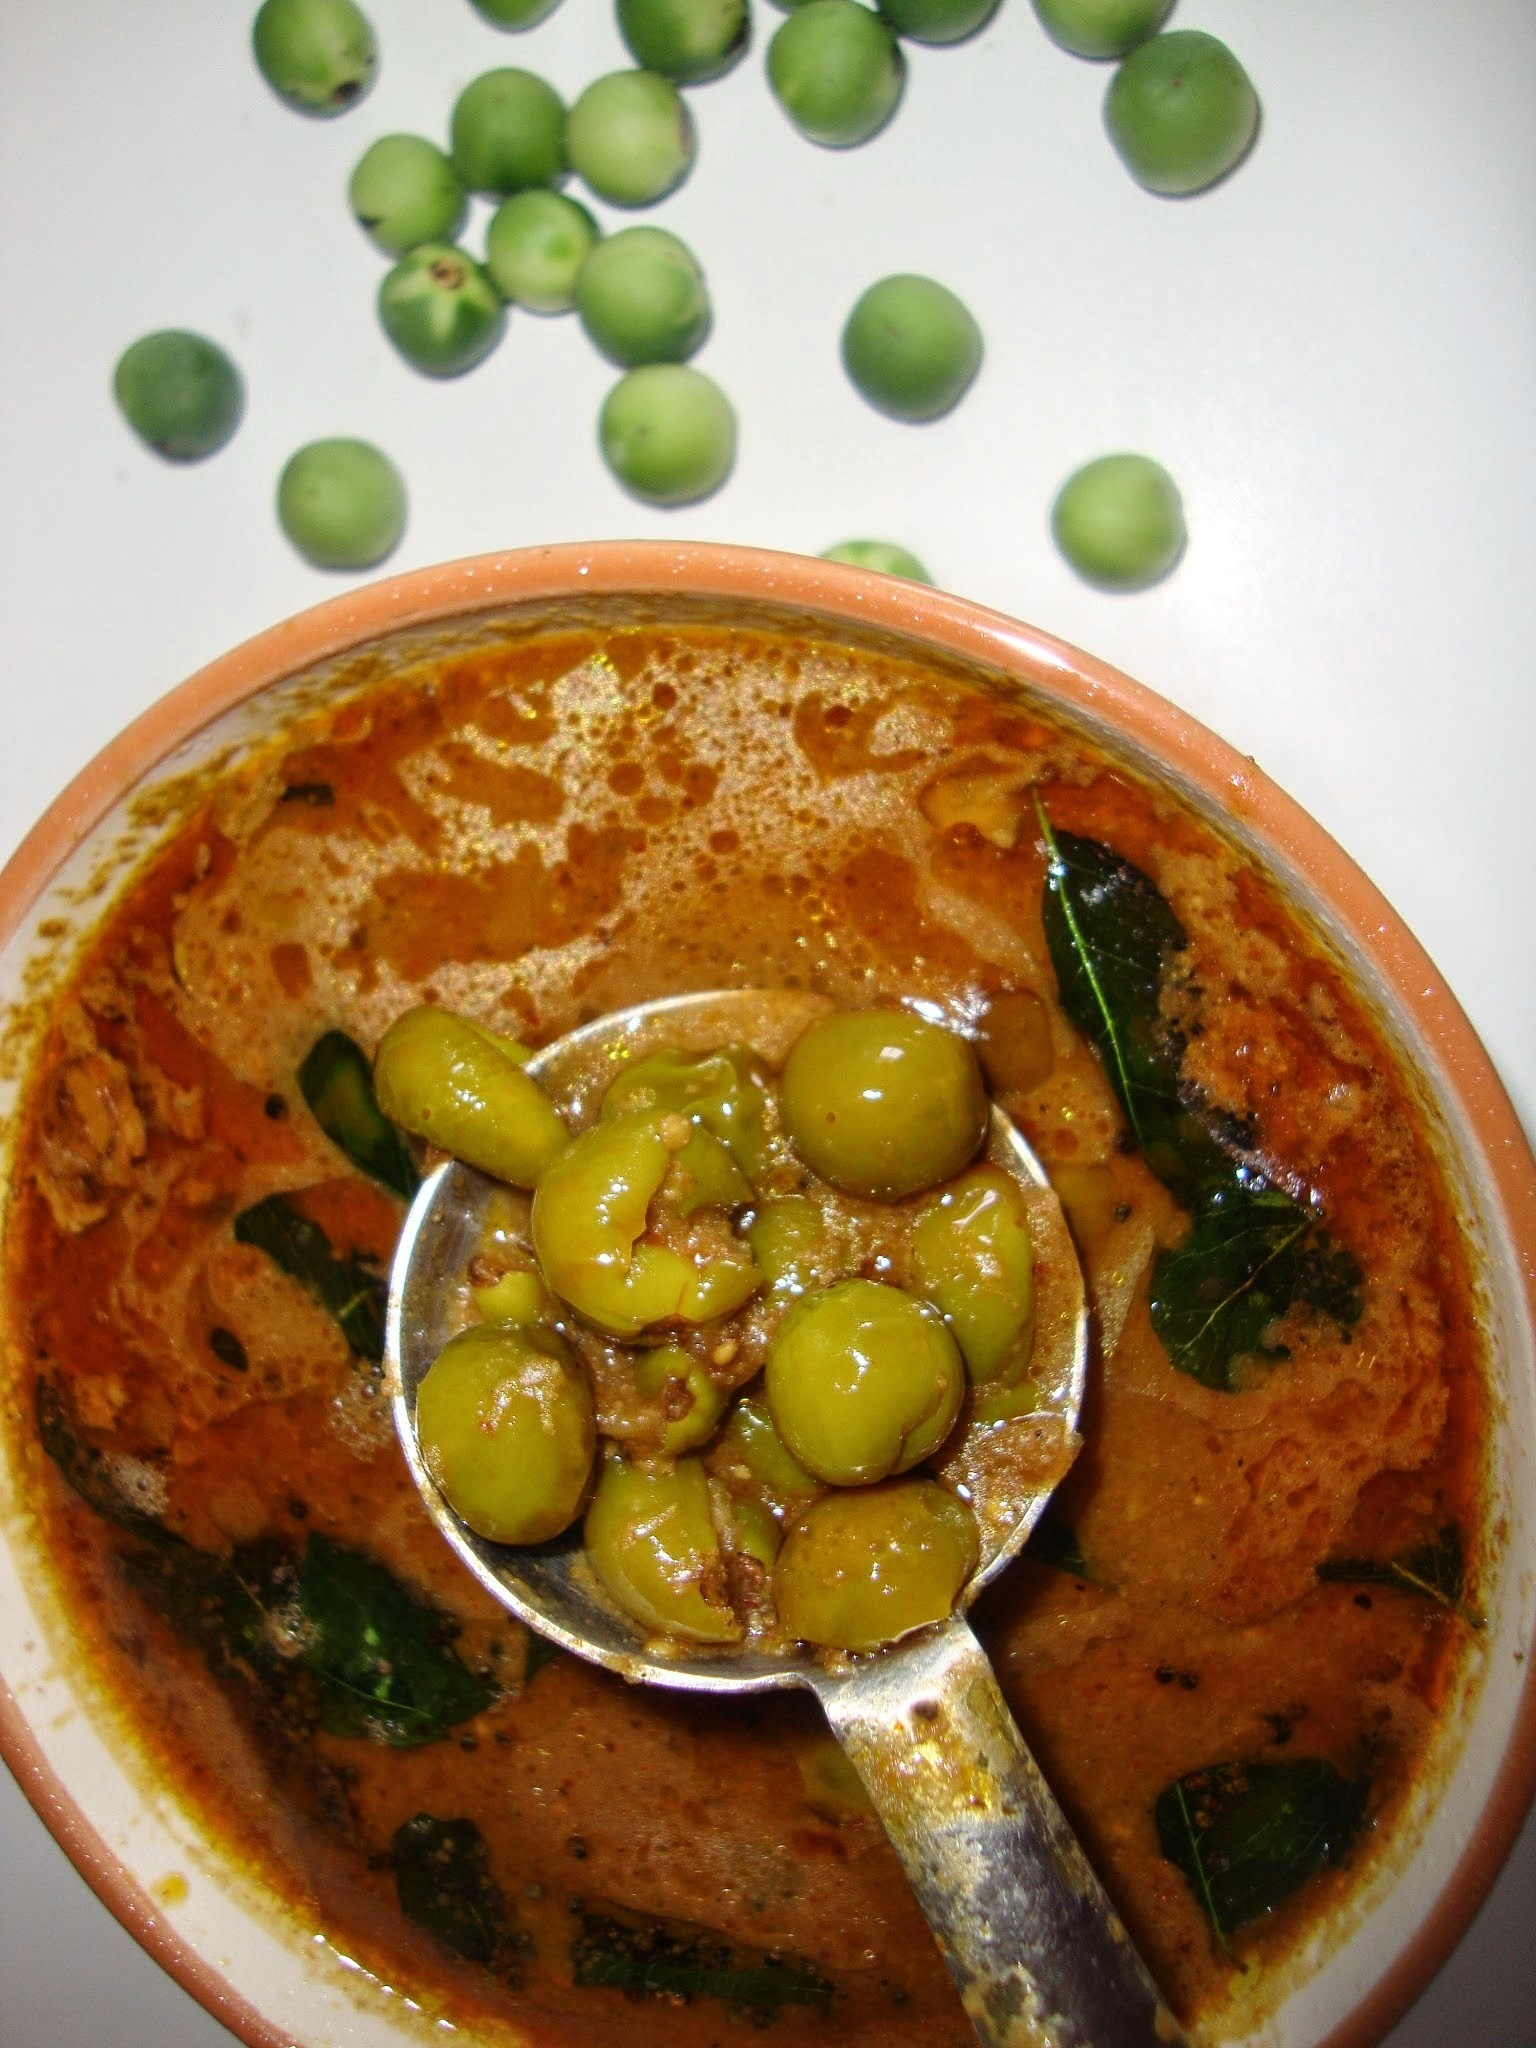 Sundakkai Kuzhambu | Turkey berry curry with Tamarind juice